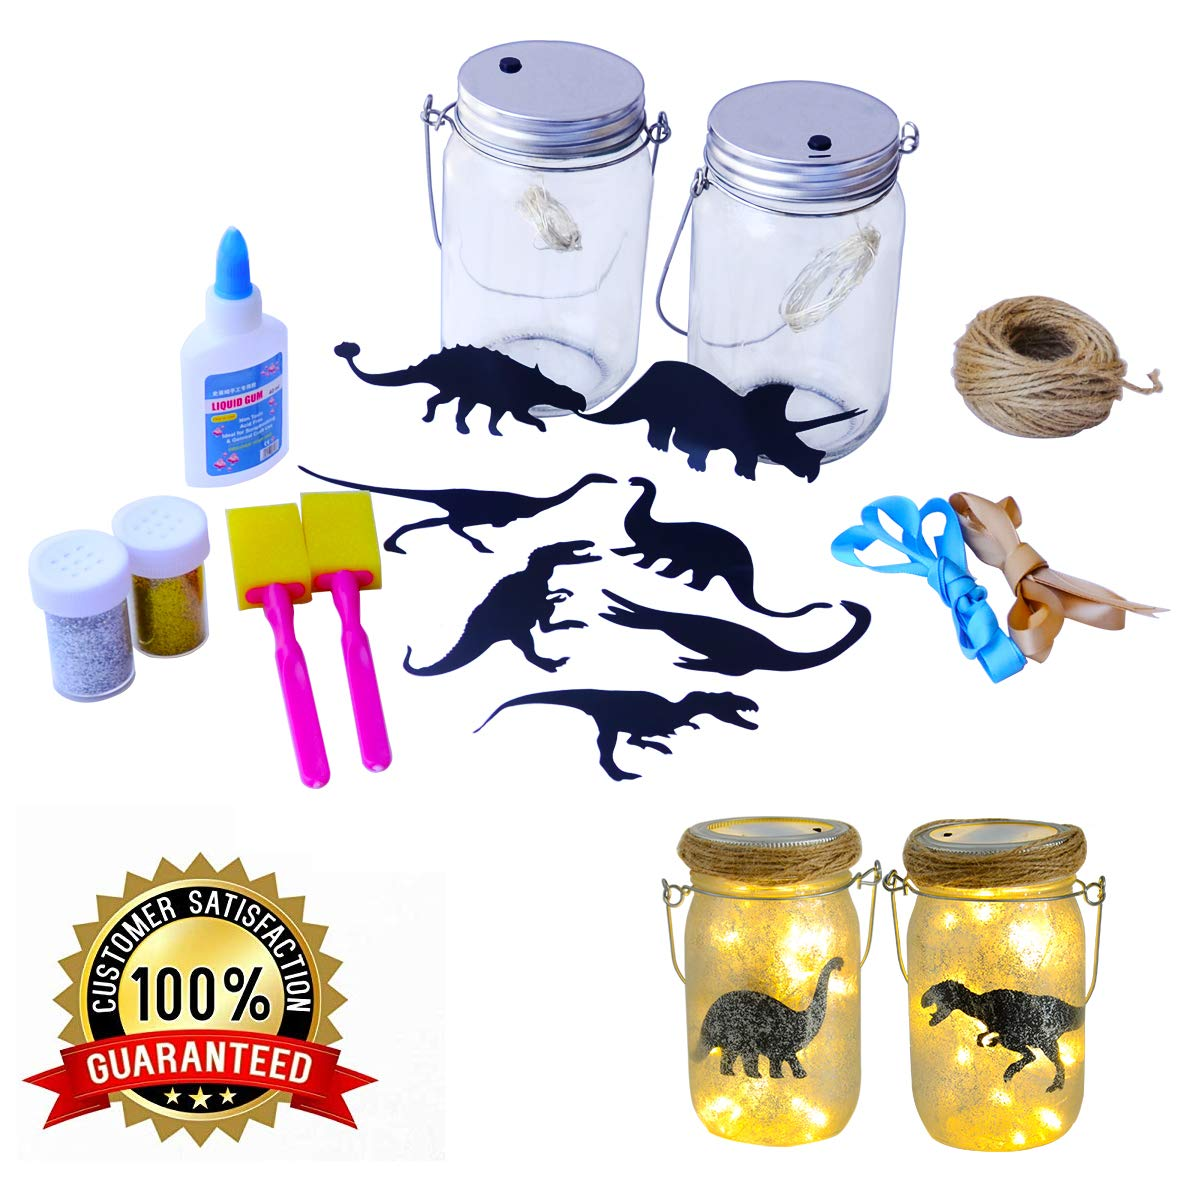 Onnetila Fairy Lantern Craft Kit (2 Pack) Dinosaur Nightlight Kit Make Your Own Fairy Lantern Dino Jar - DIY Craft Project Gift for Boys and Girls